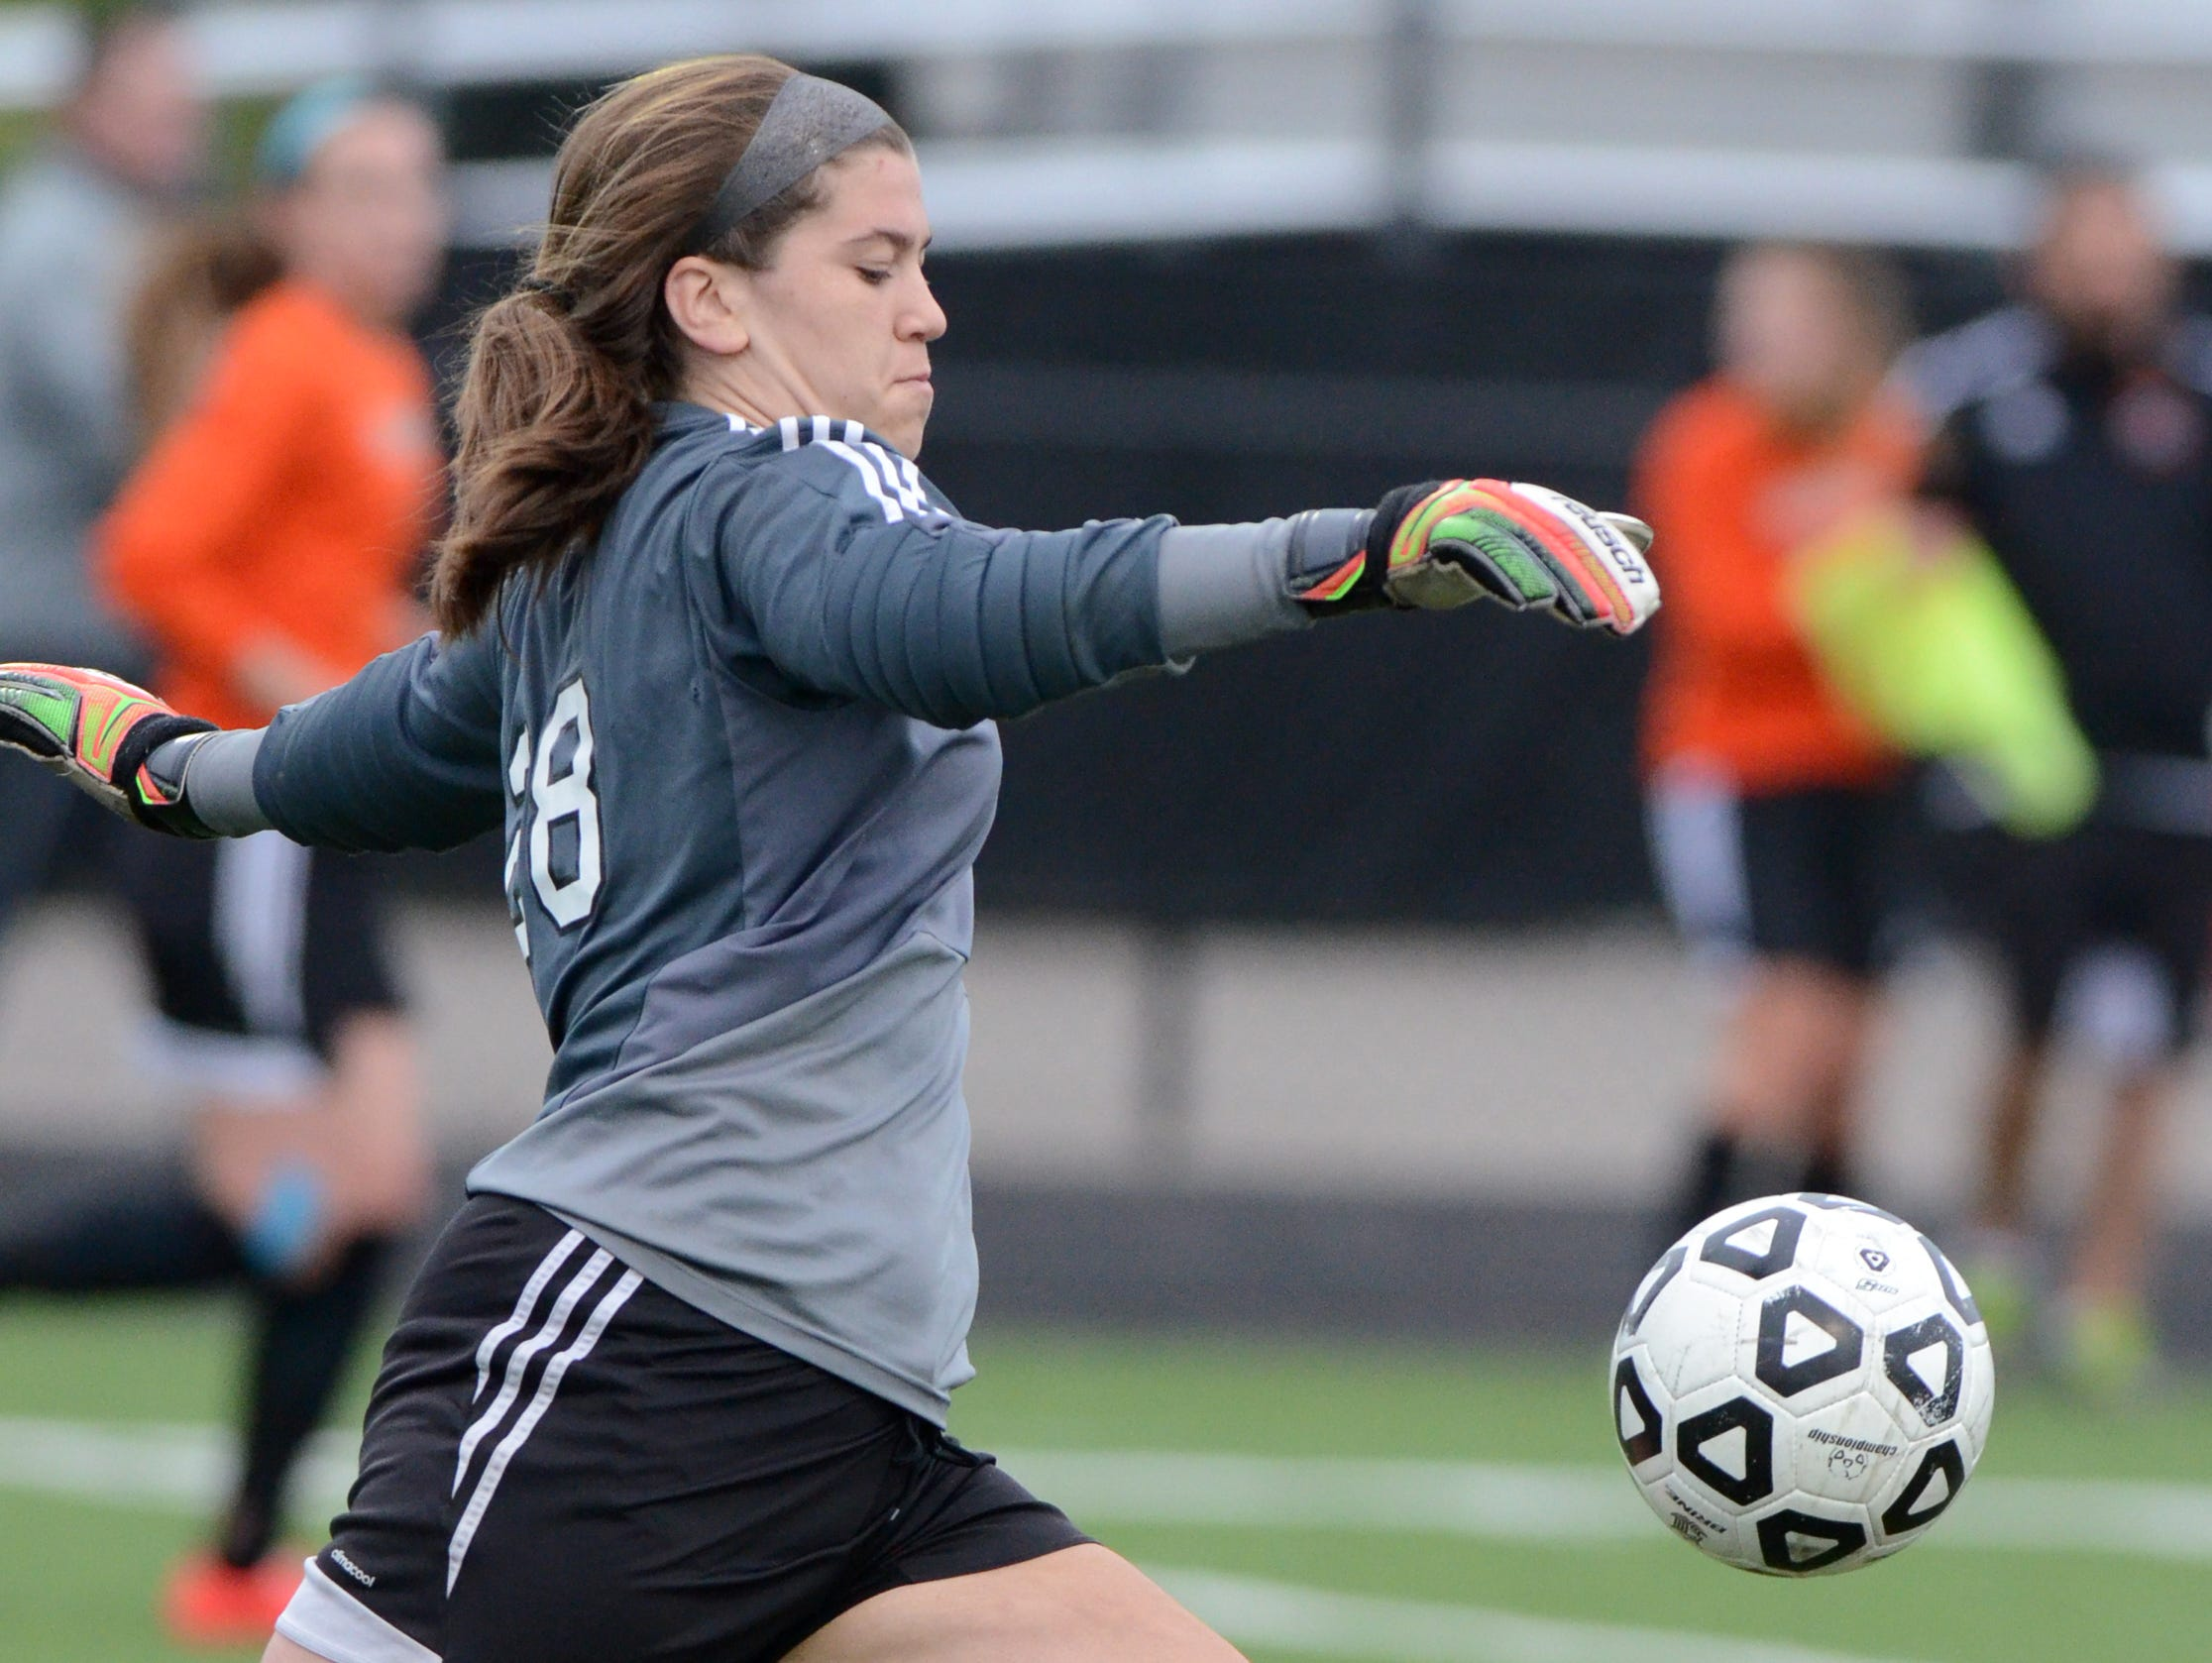 Northville senior goalkeeper Emily Maresh punts the ball during first-half action in the KLAA Association championship match against Brighton.